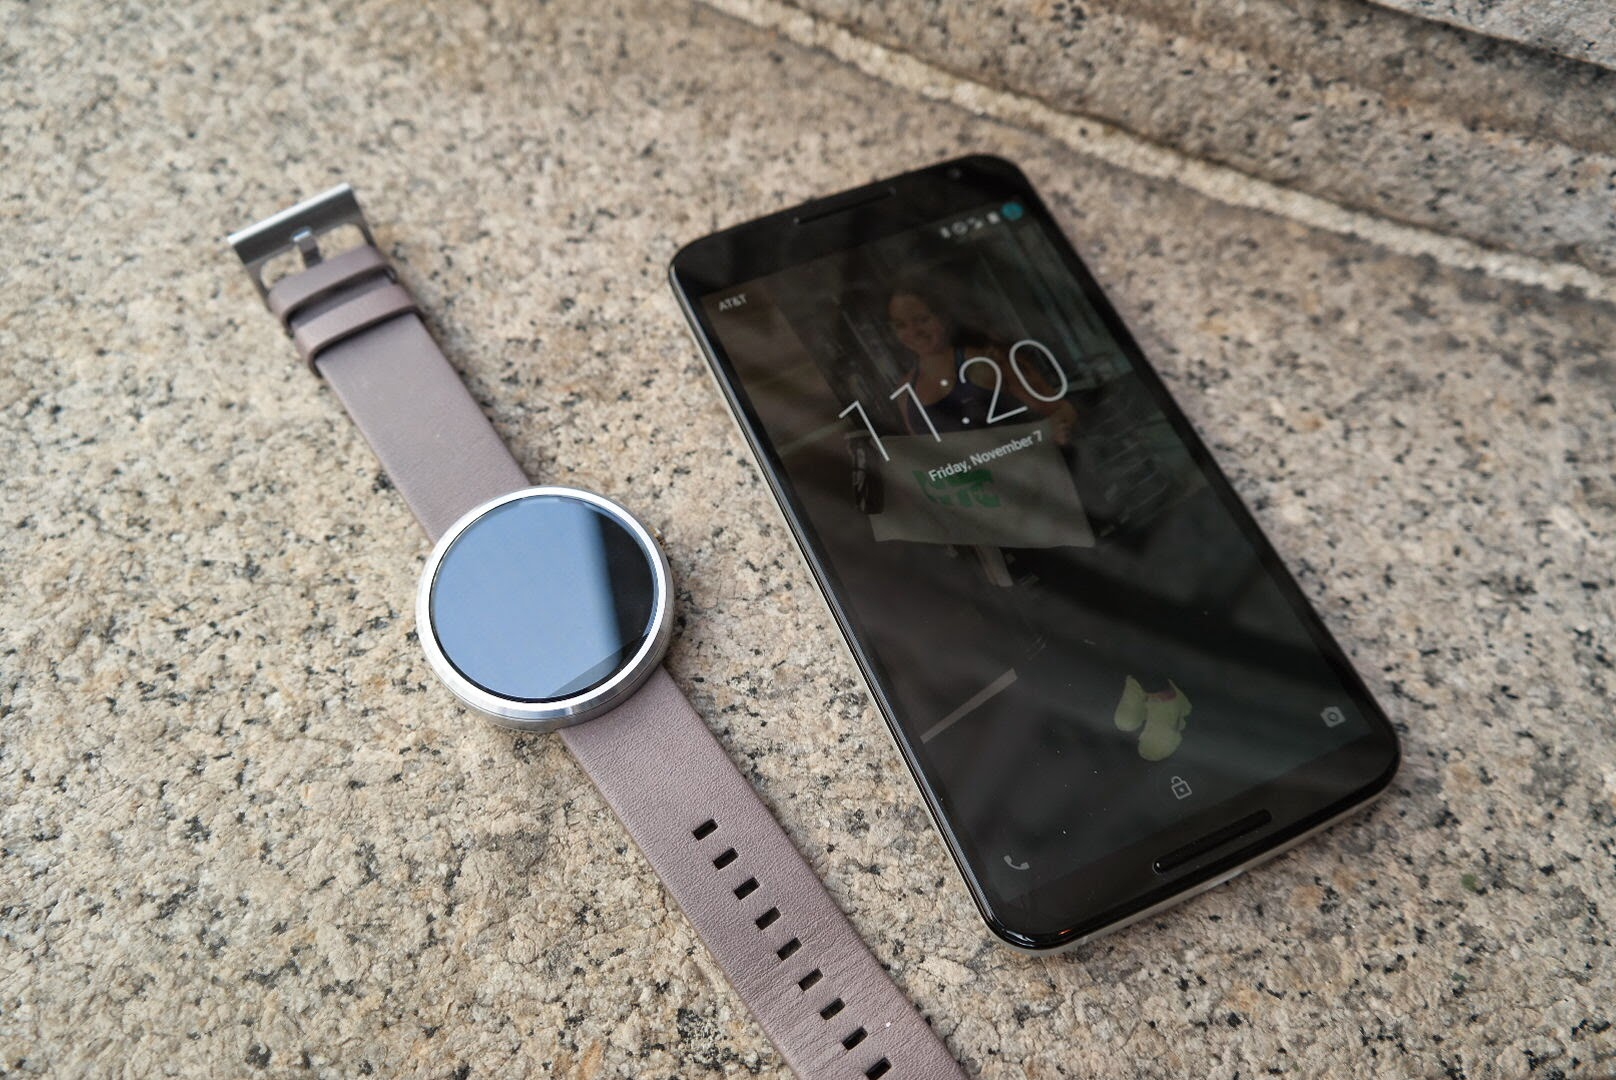 Motorola Moto 360 Smartwatch Review - Android Wear Is ...